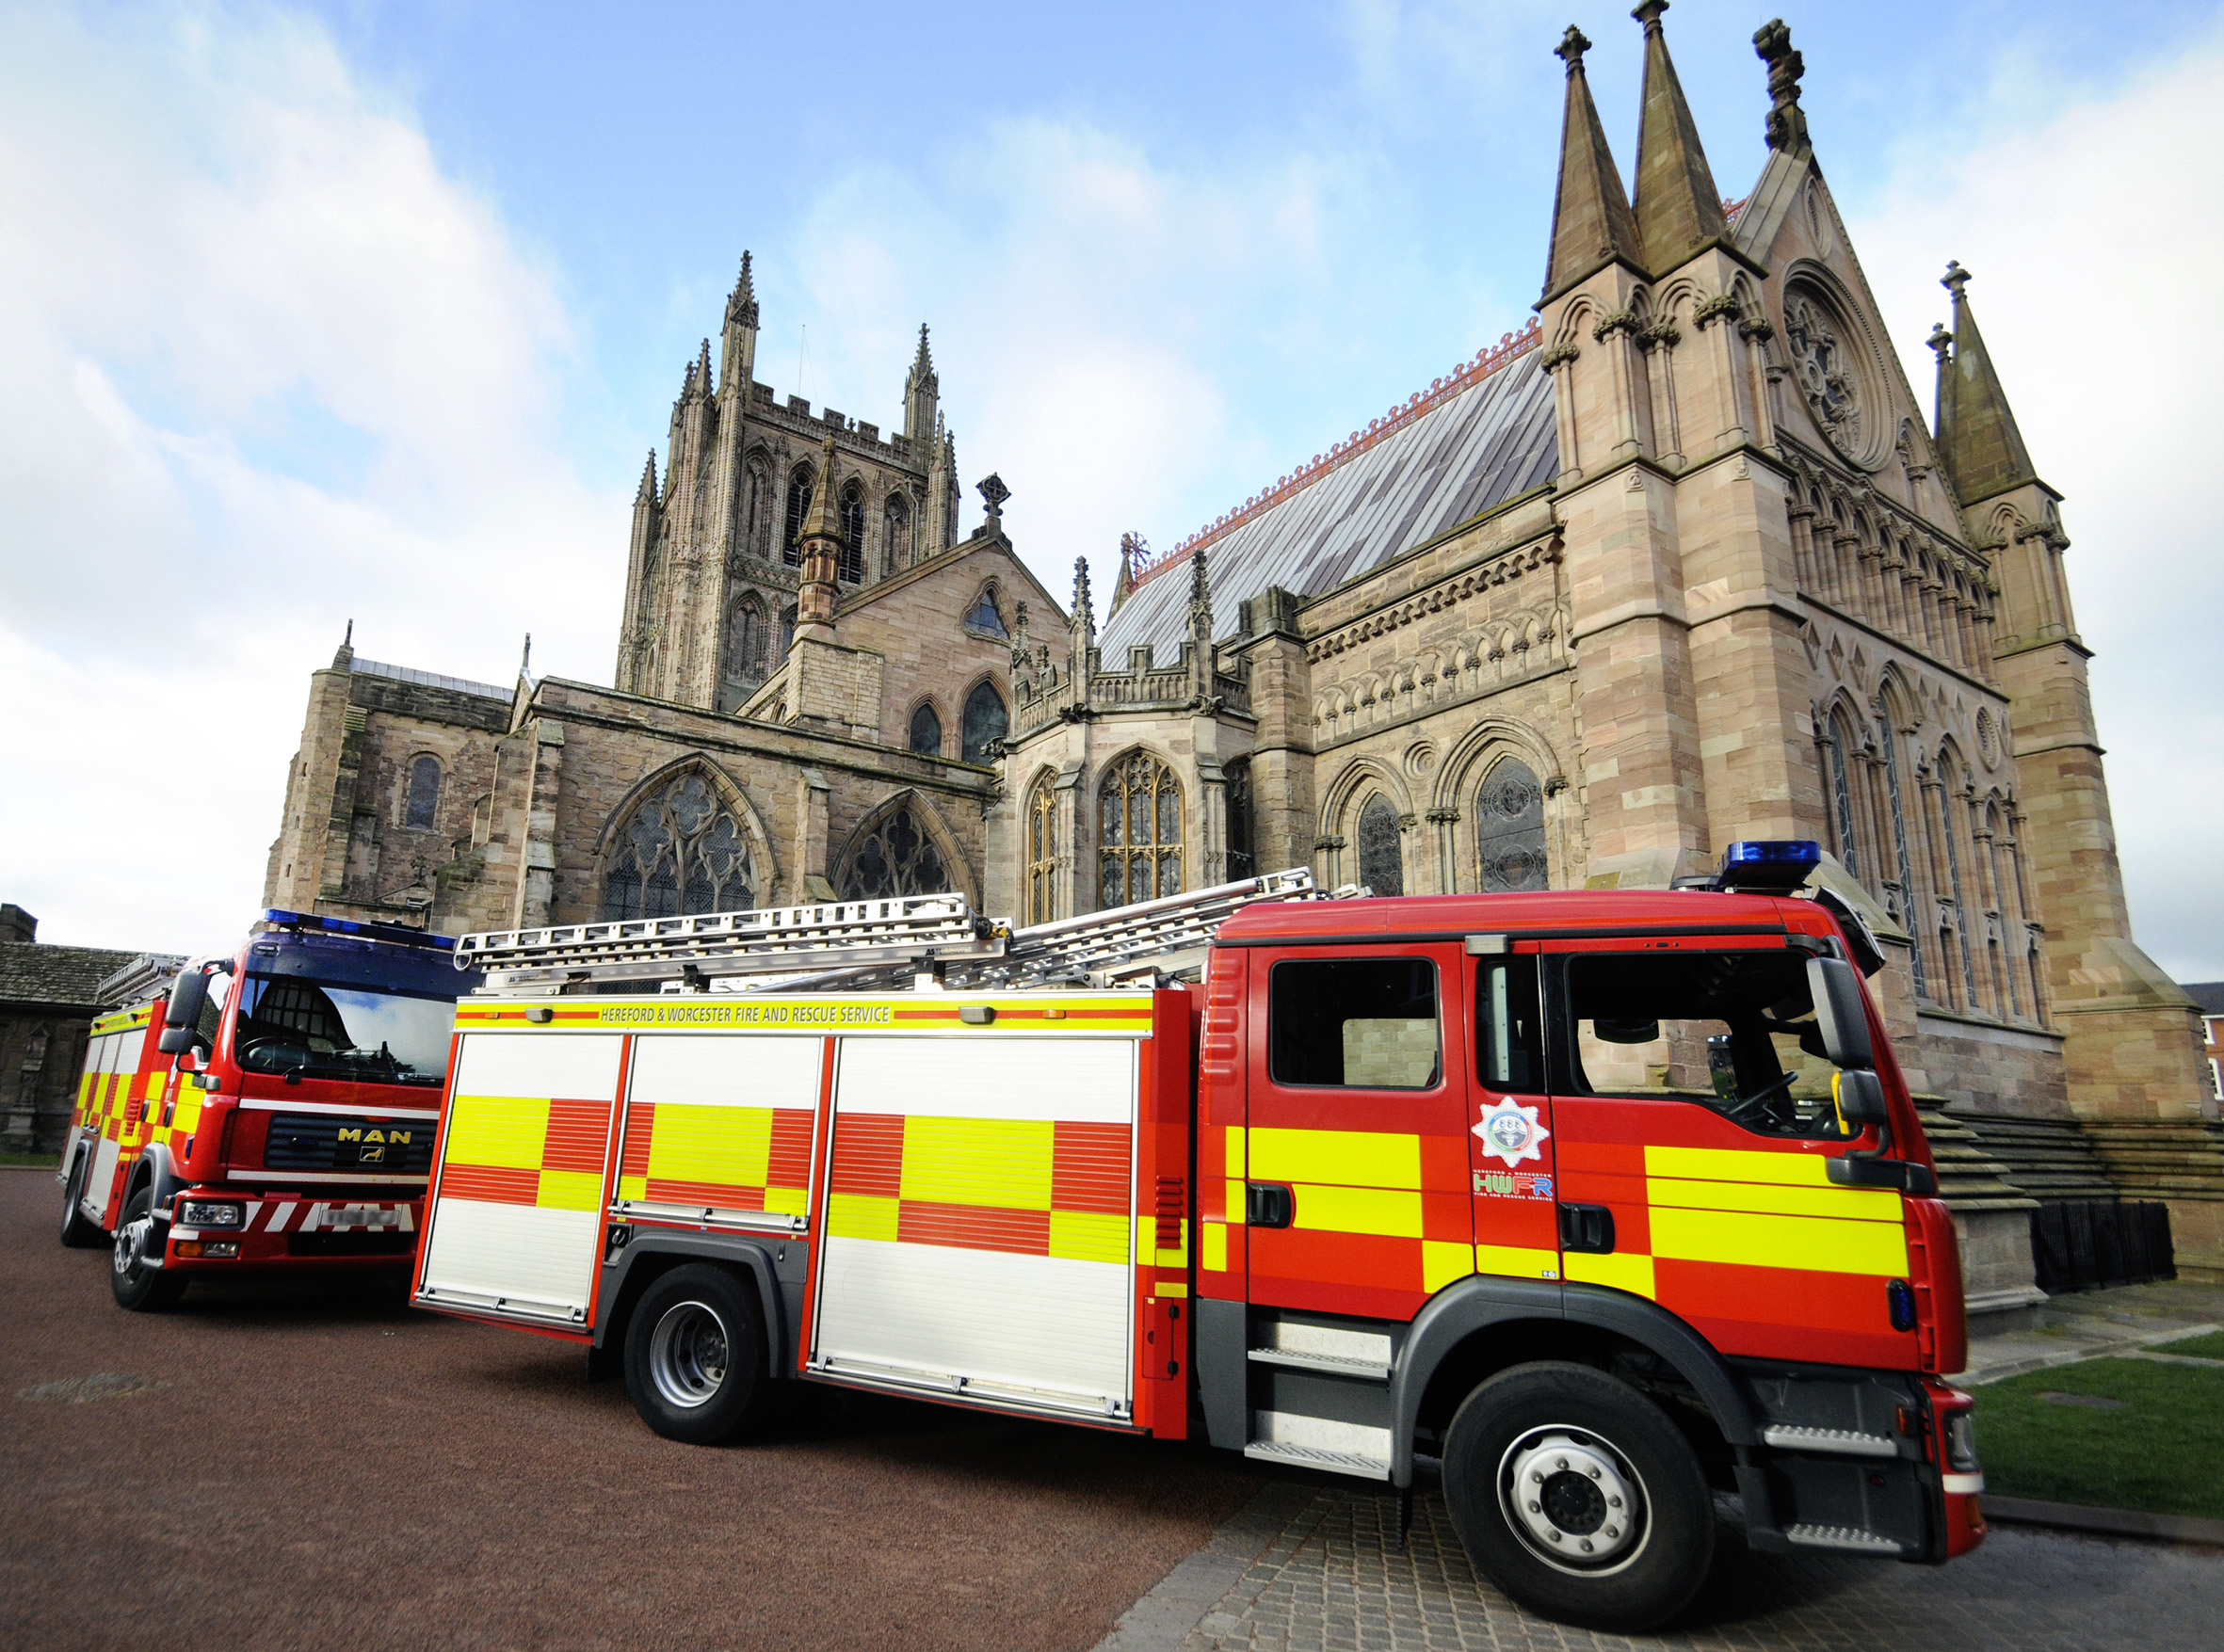 PROTOCOL: Training exercises take place regularly at Hereford and Worcester cathedrals